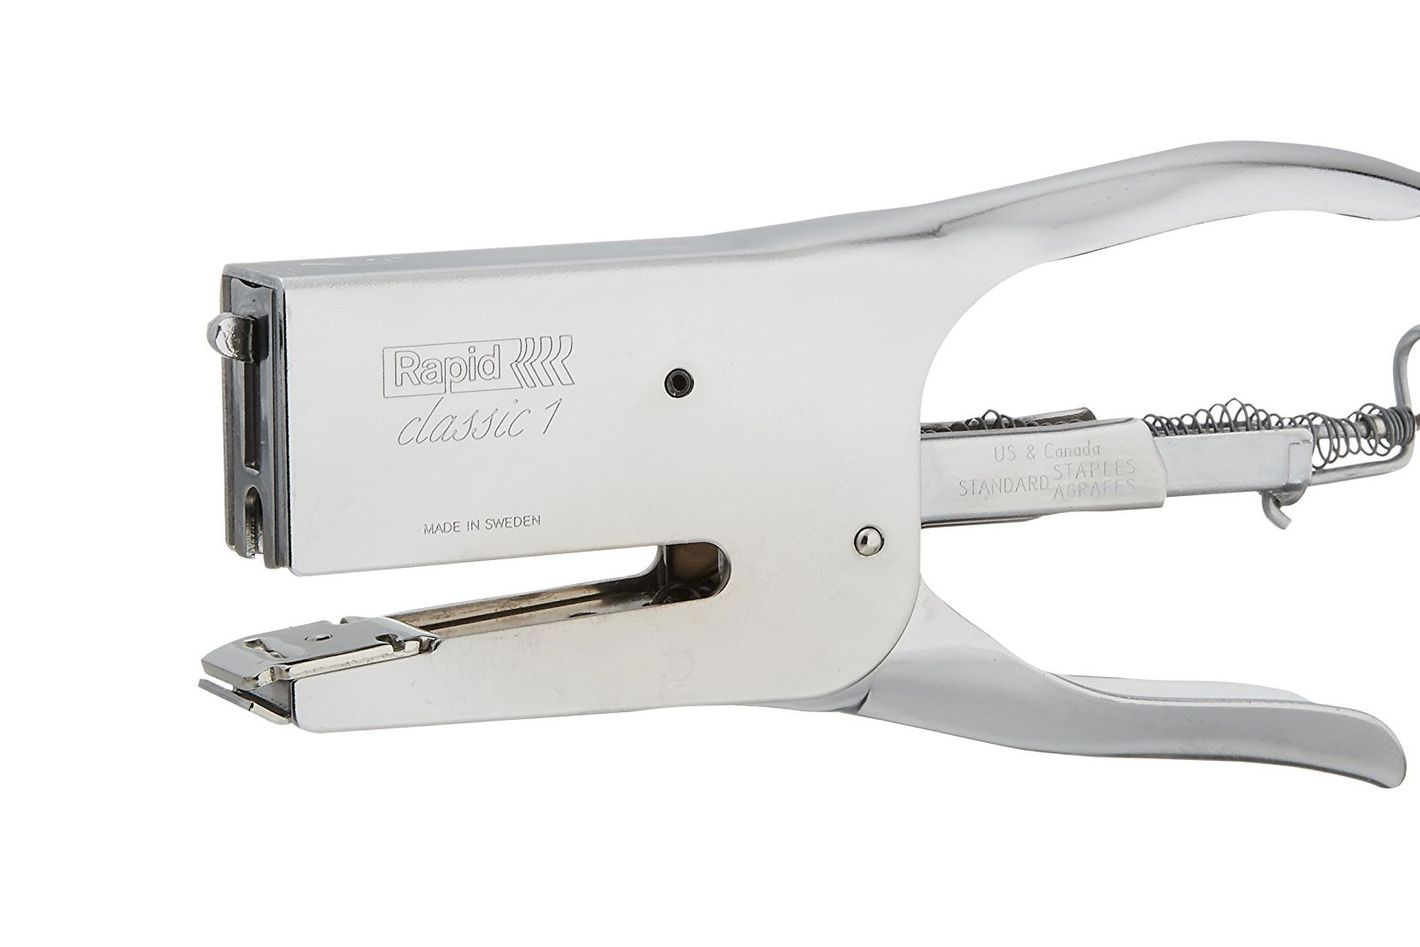 Esselte Rapid Classic 1 Plier Stapler